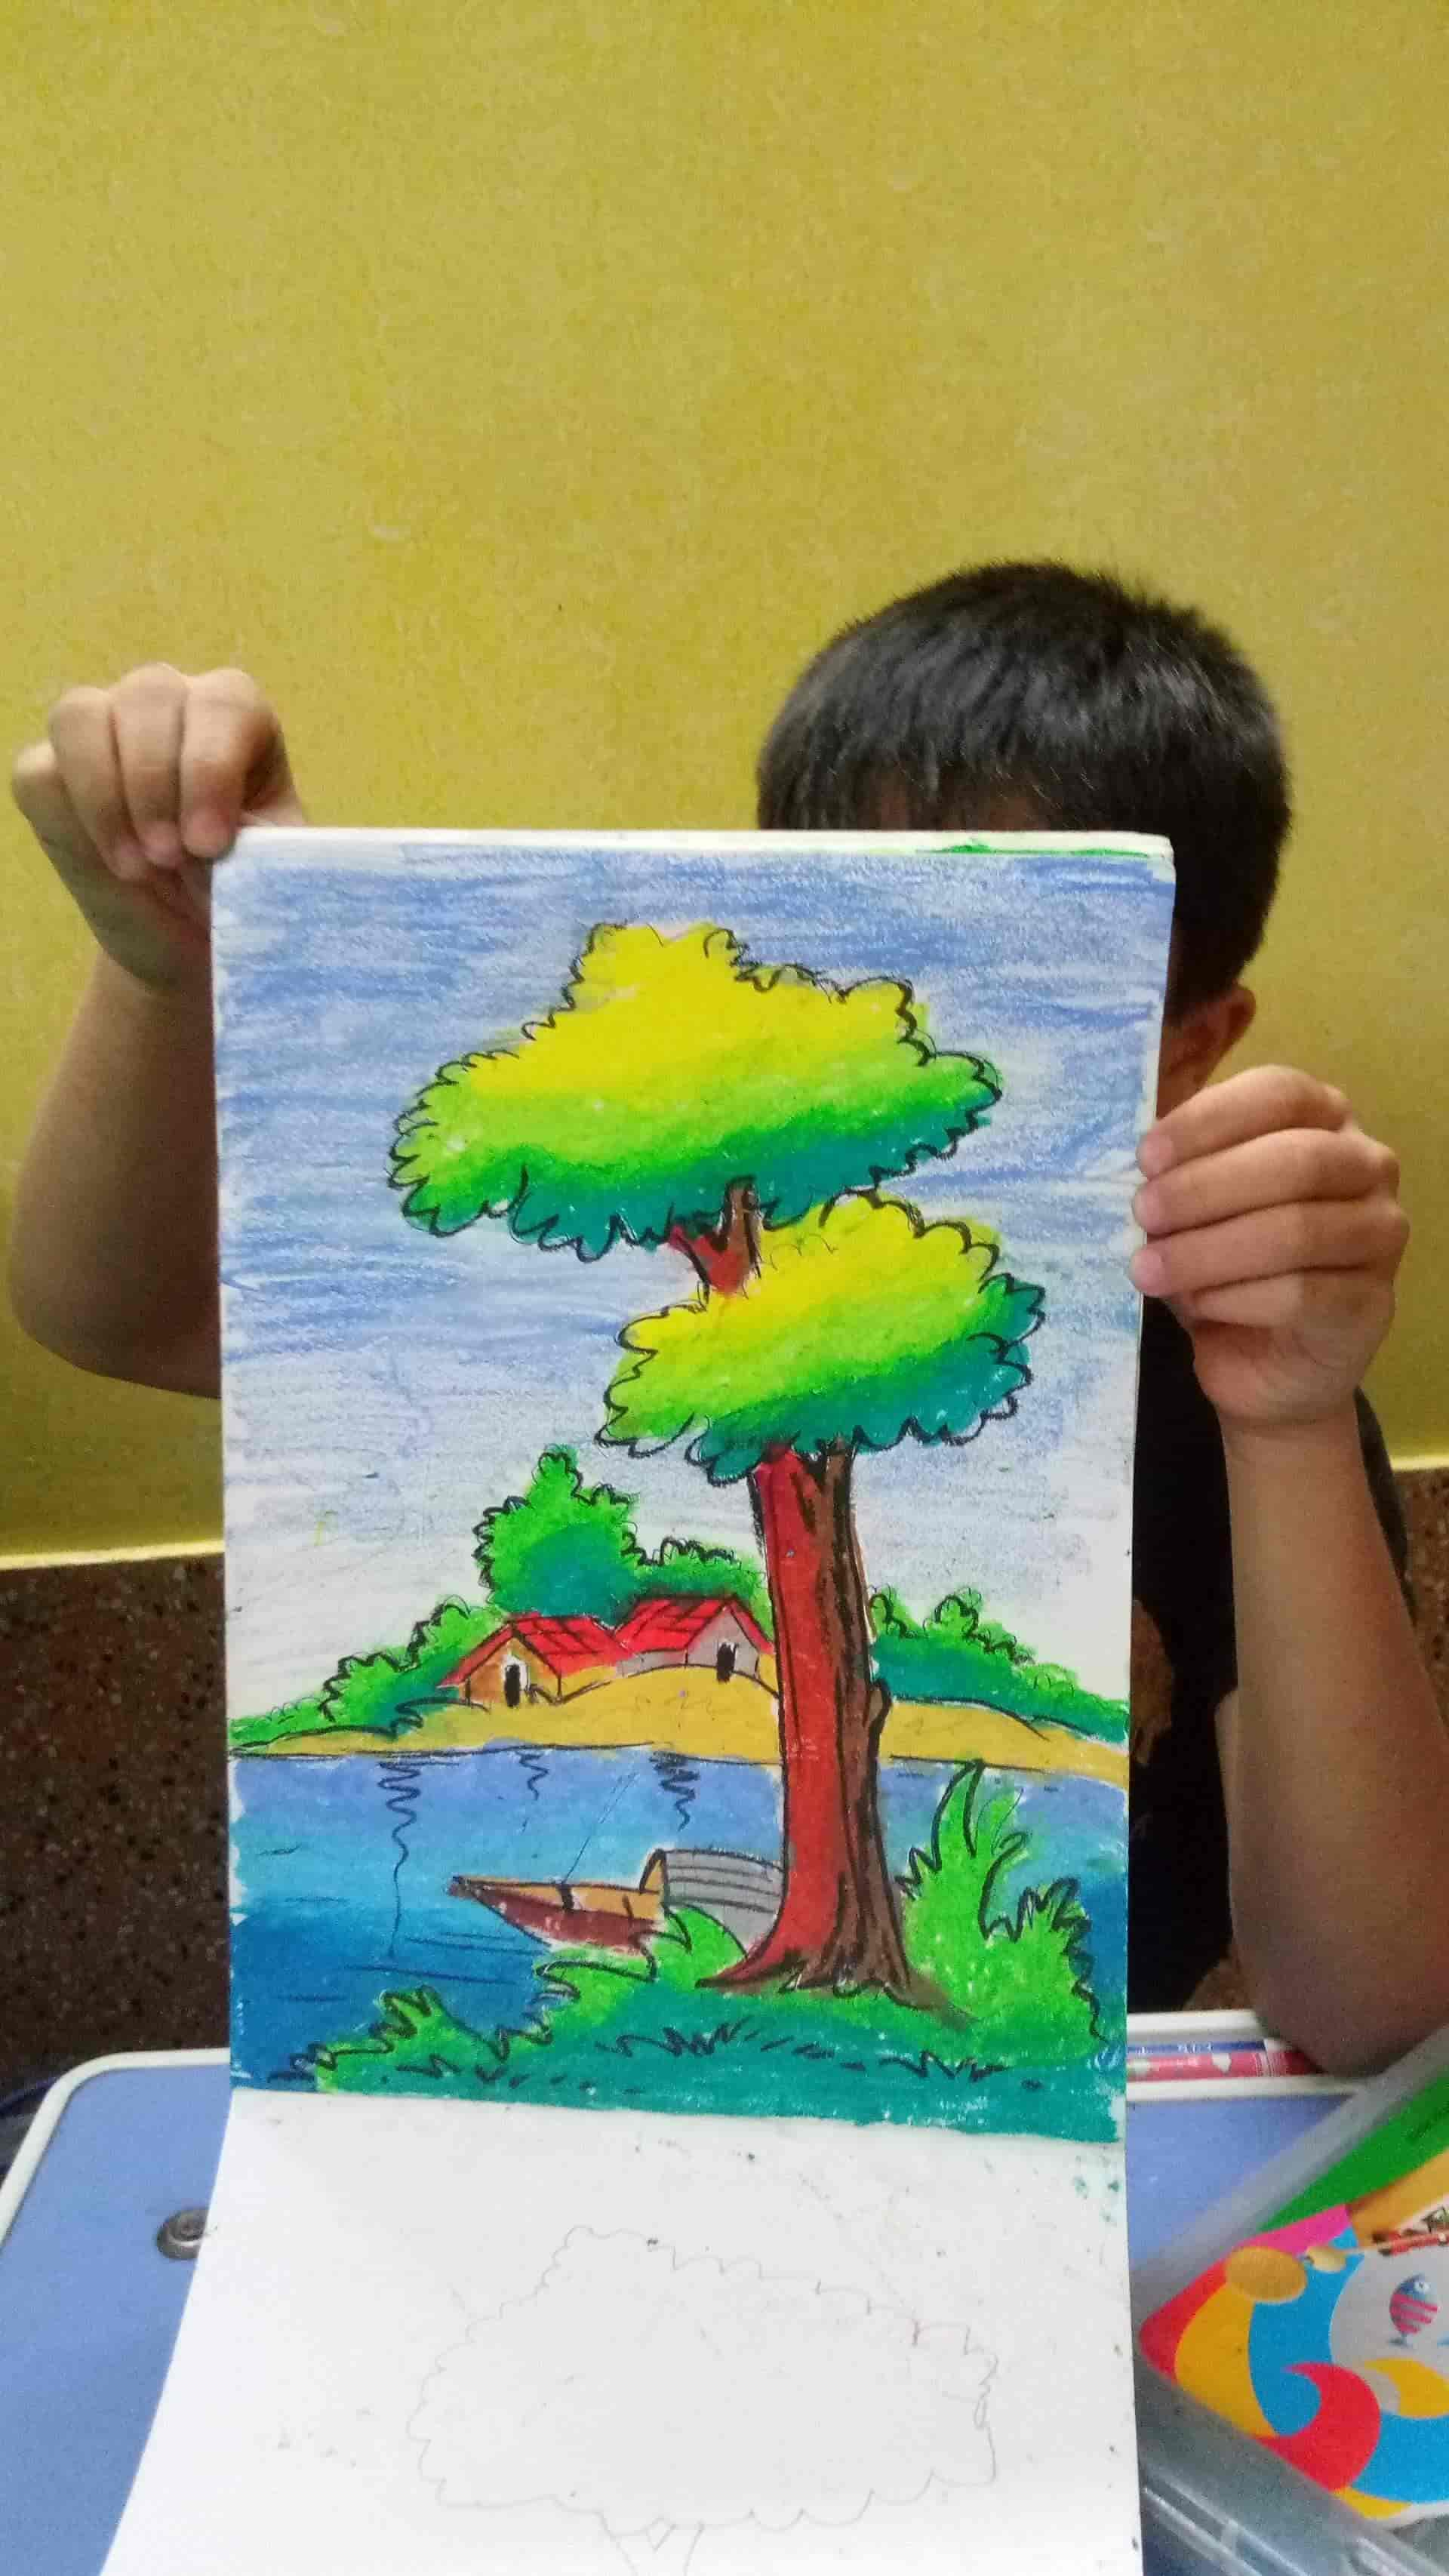 Art Craft Drawing Classes Midnapore Ho Drawing Classes In Midnapore Justdial